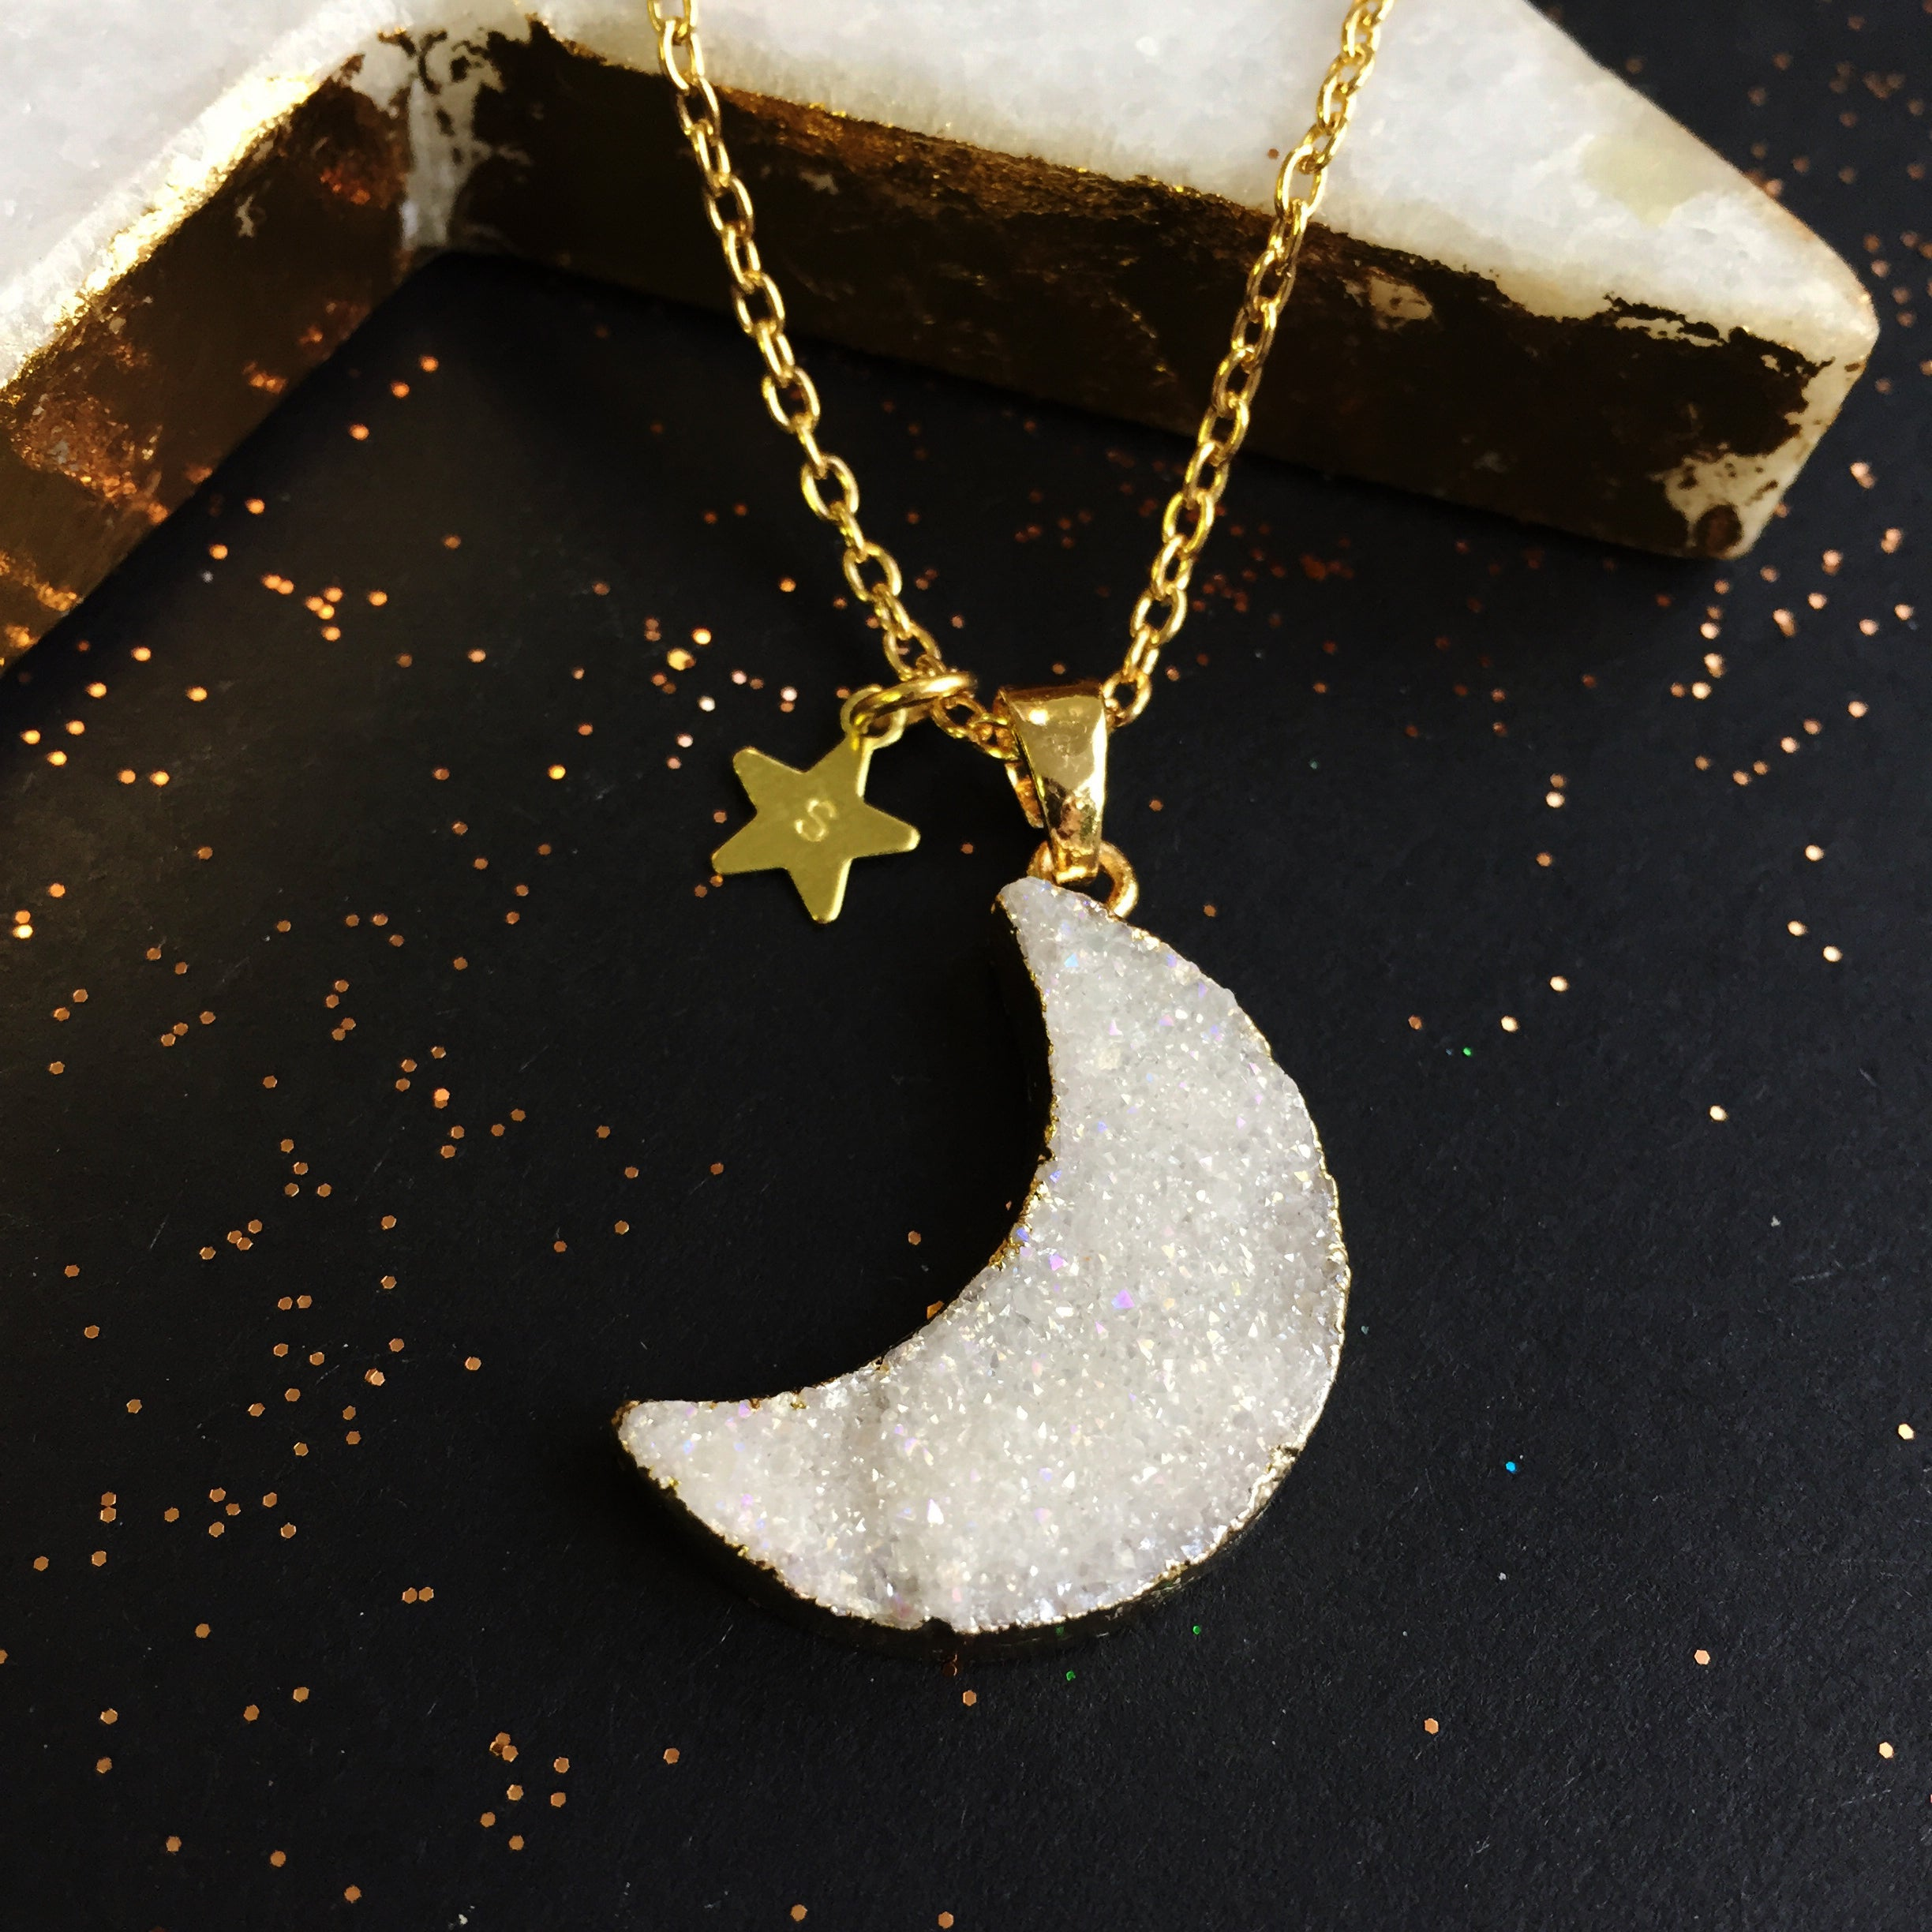 Personalised Druzy Quartz Moon Phase Necklace by Eclectic Eccentricity on OOSTOR.com